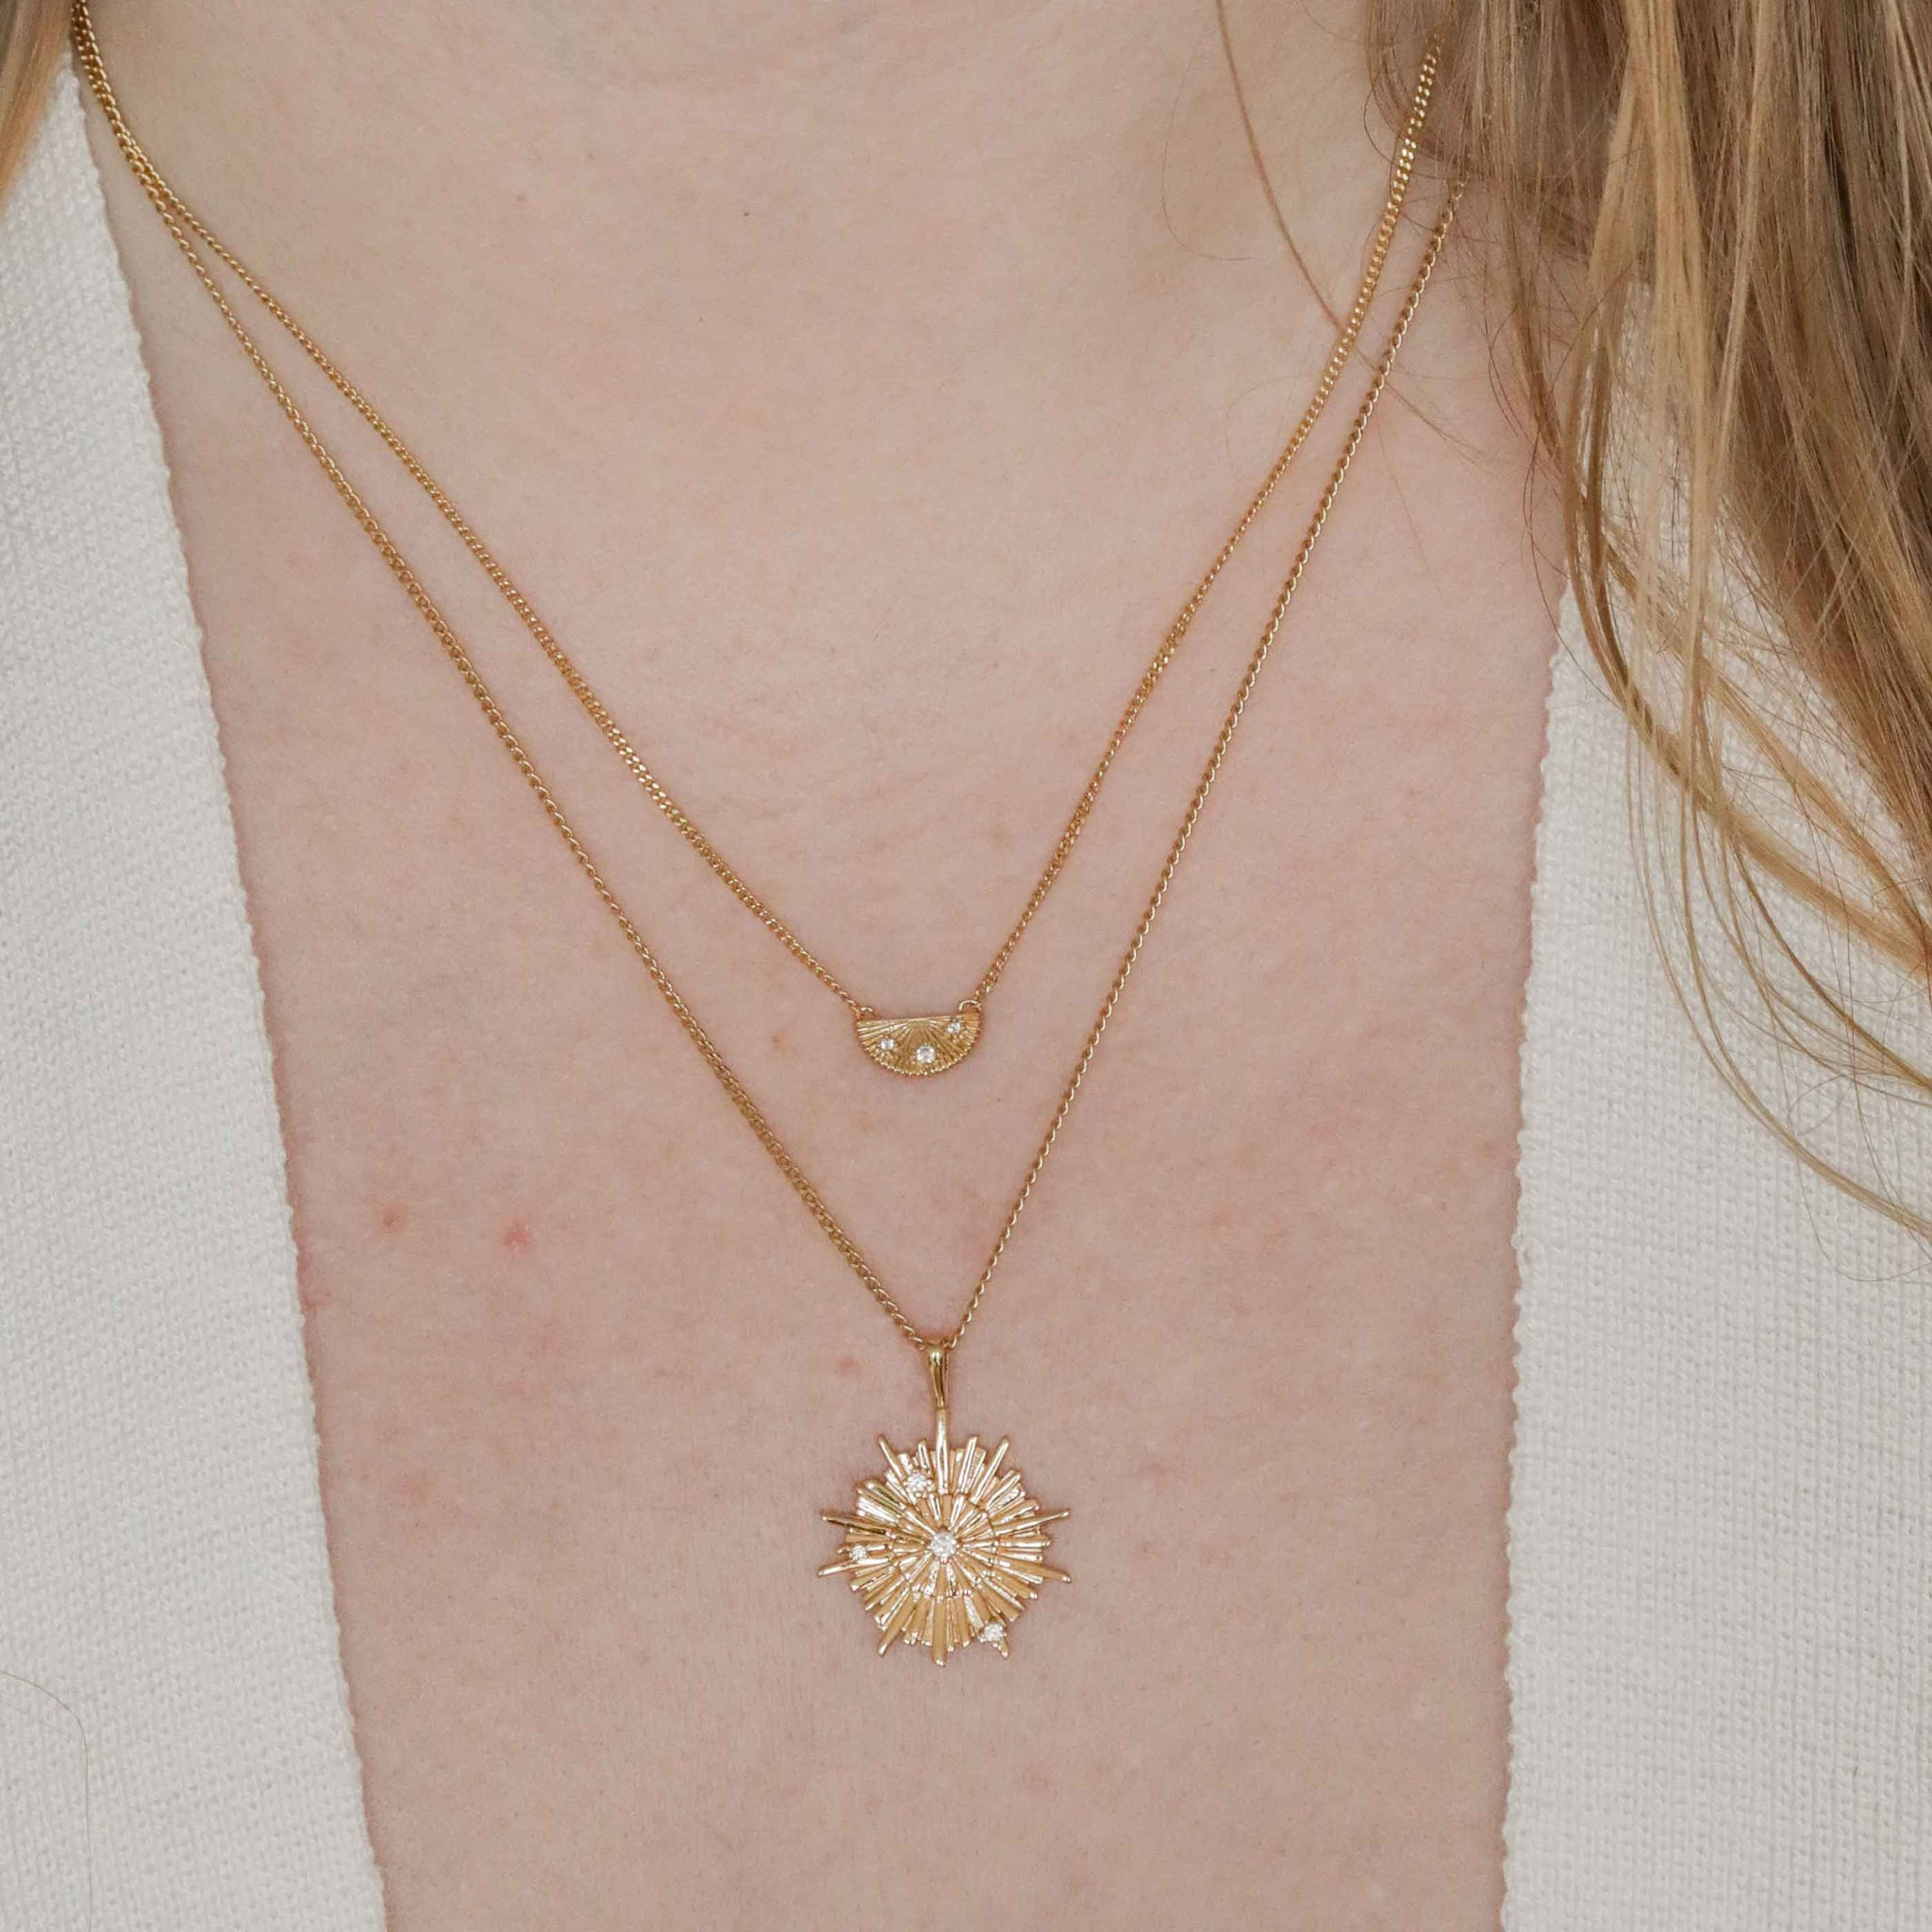 Supernova Pendant Necklace in Gold